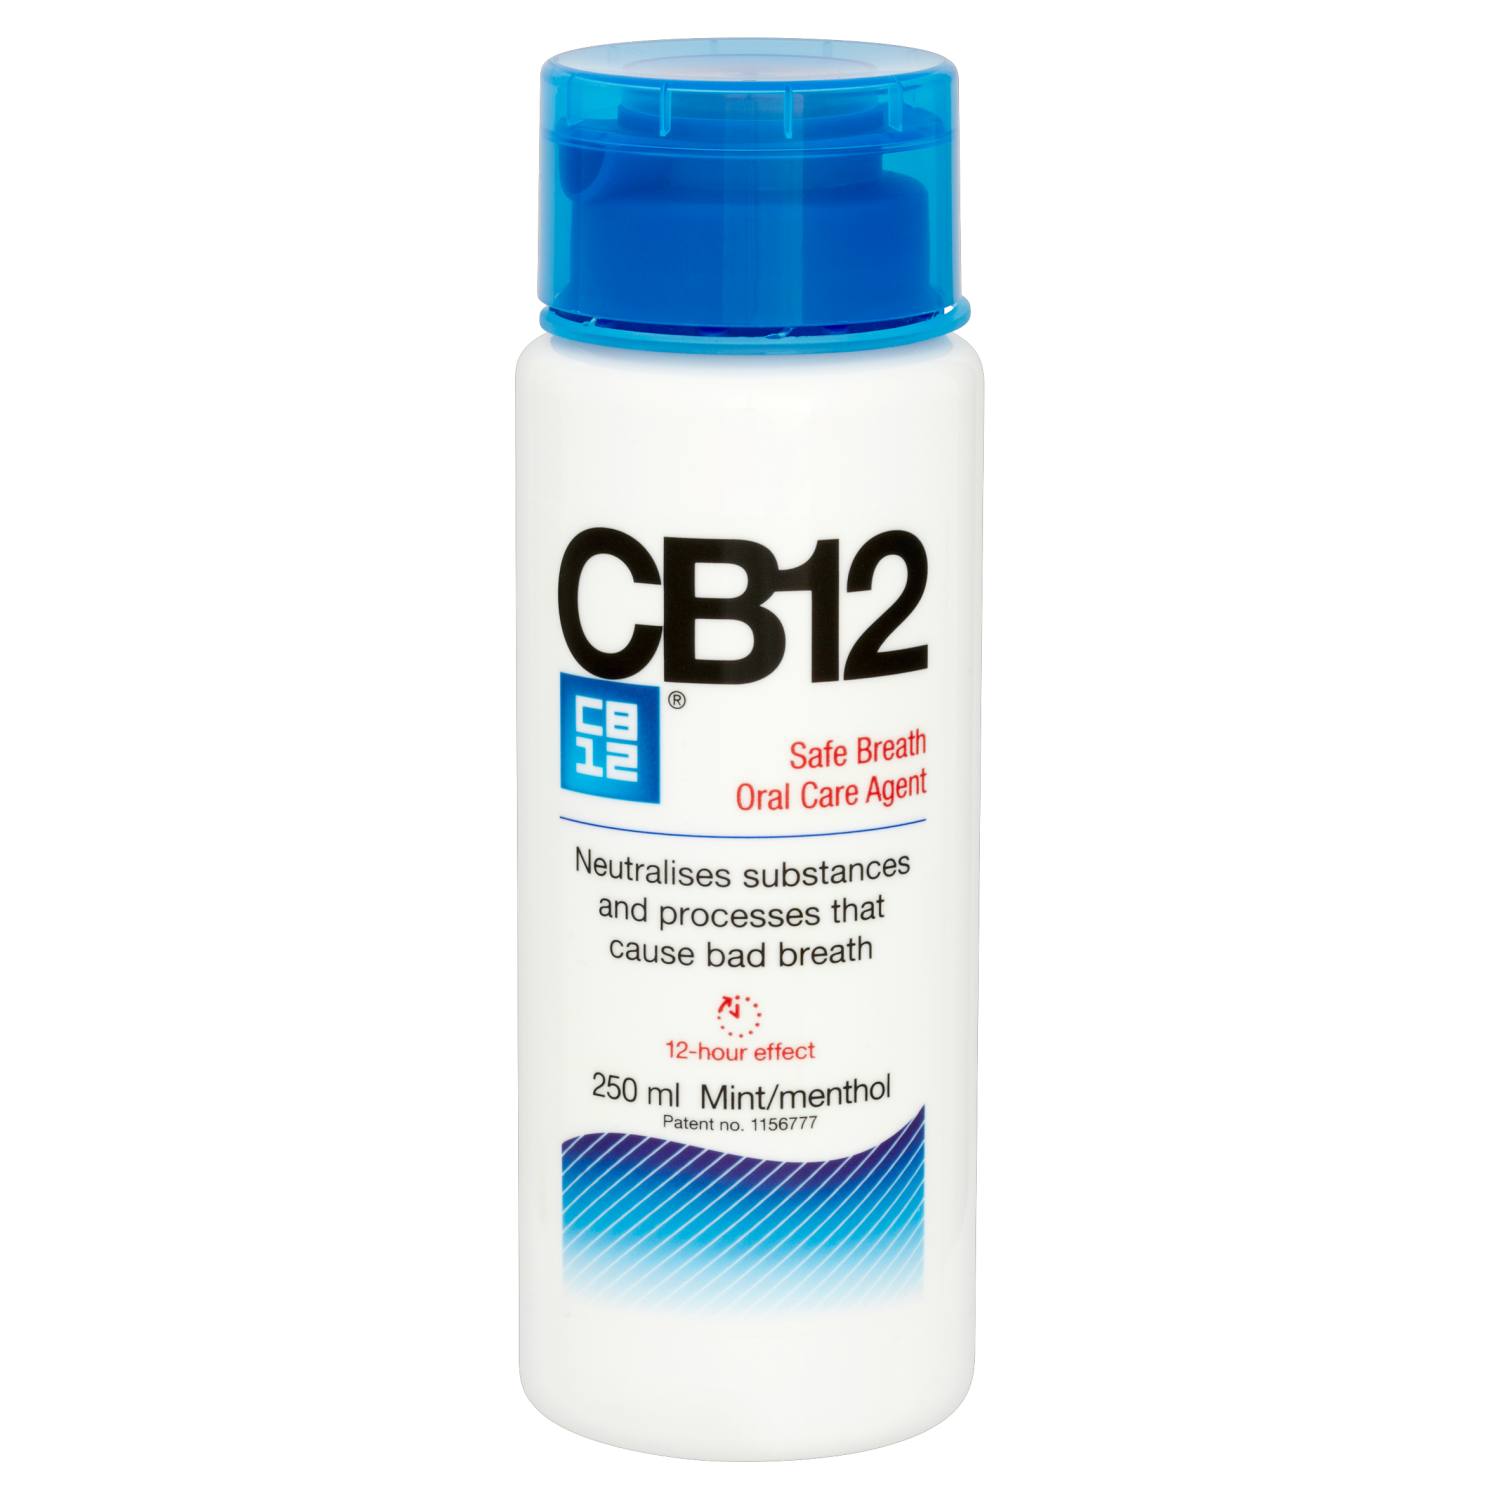 CB12 Safe Breath Oral Care Agent Mint/Menthol x 250ml